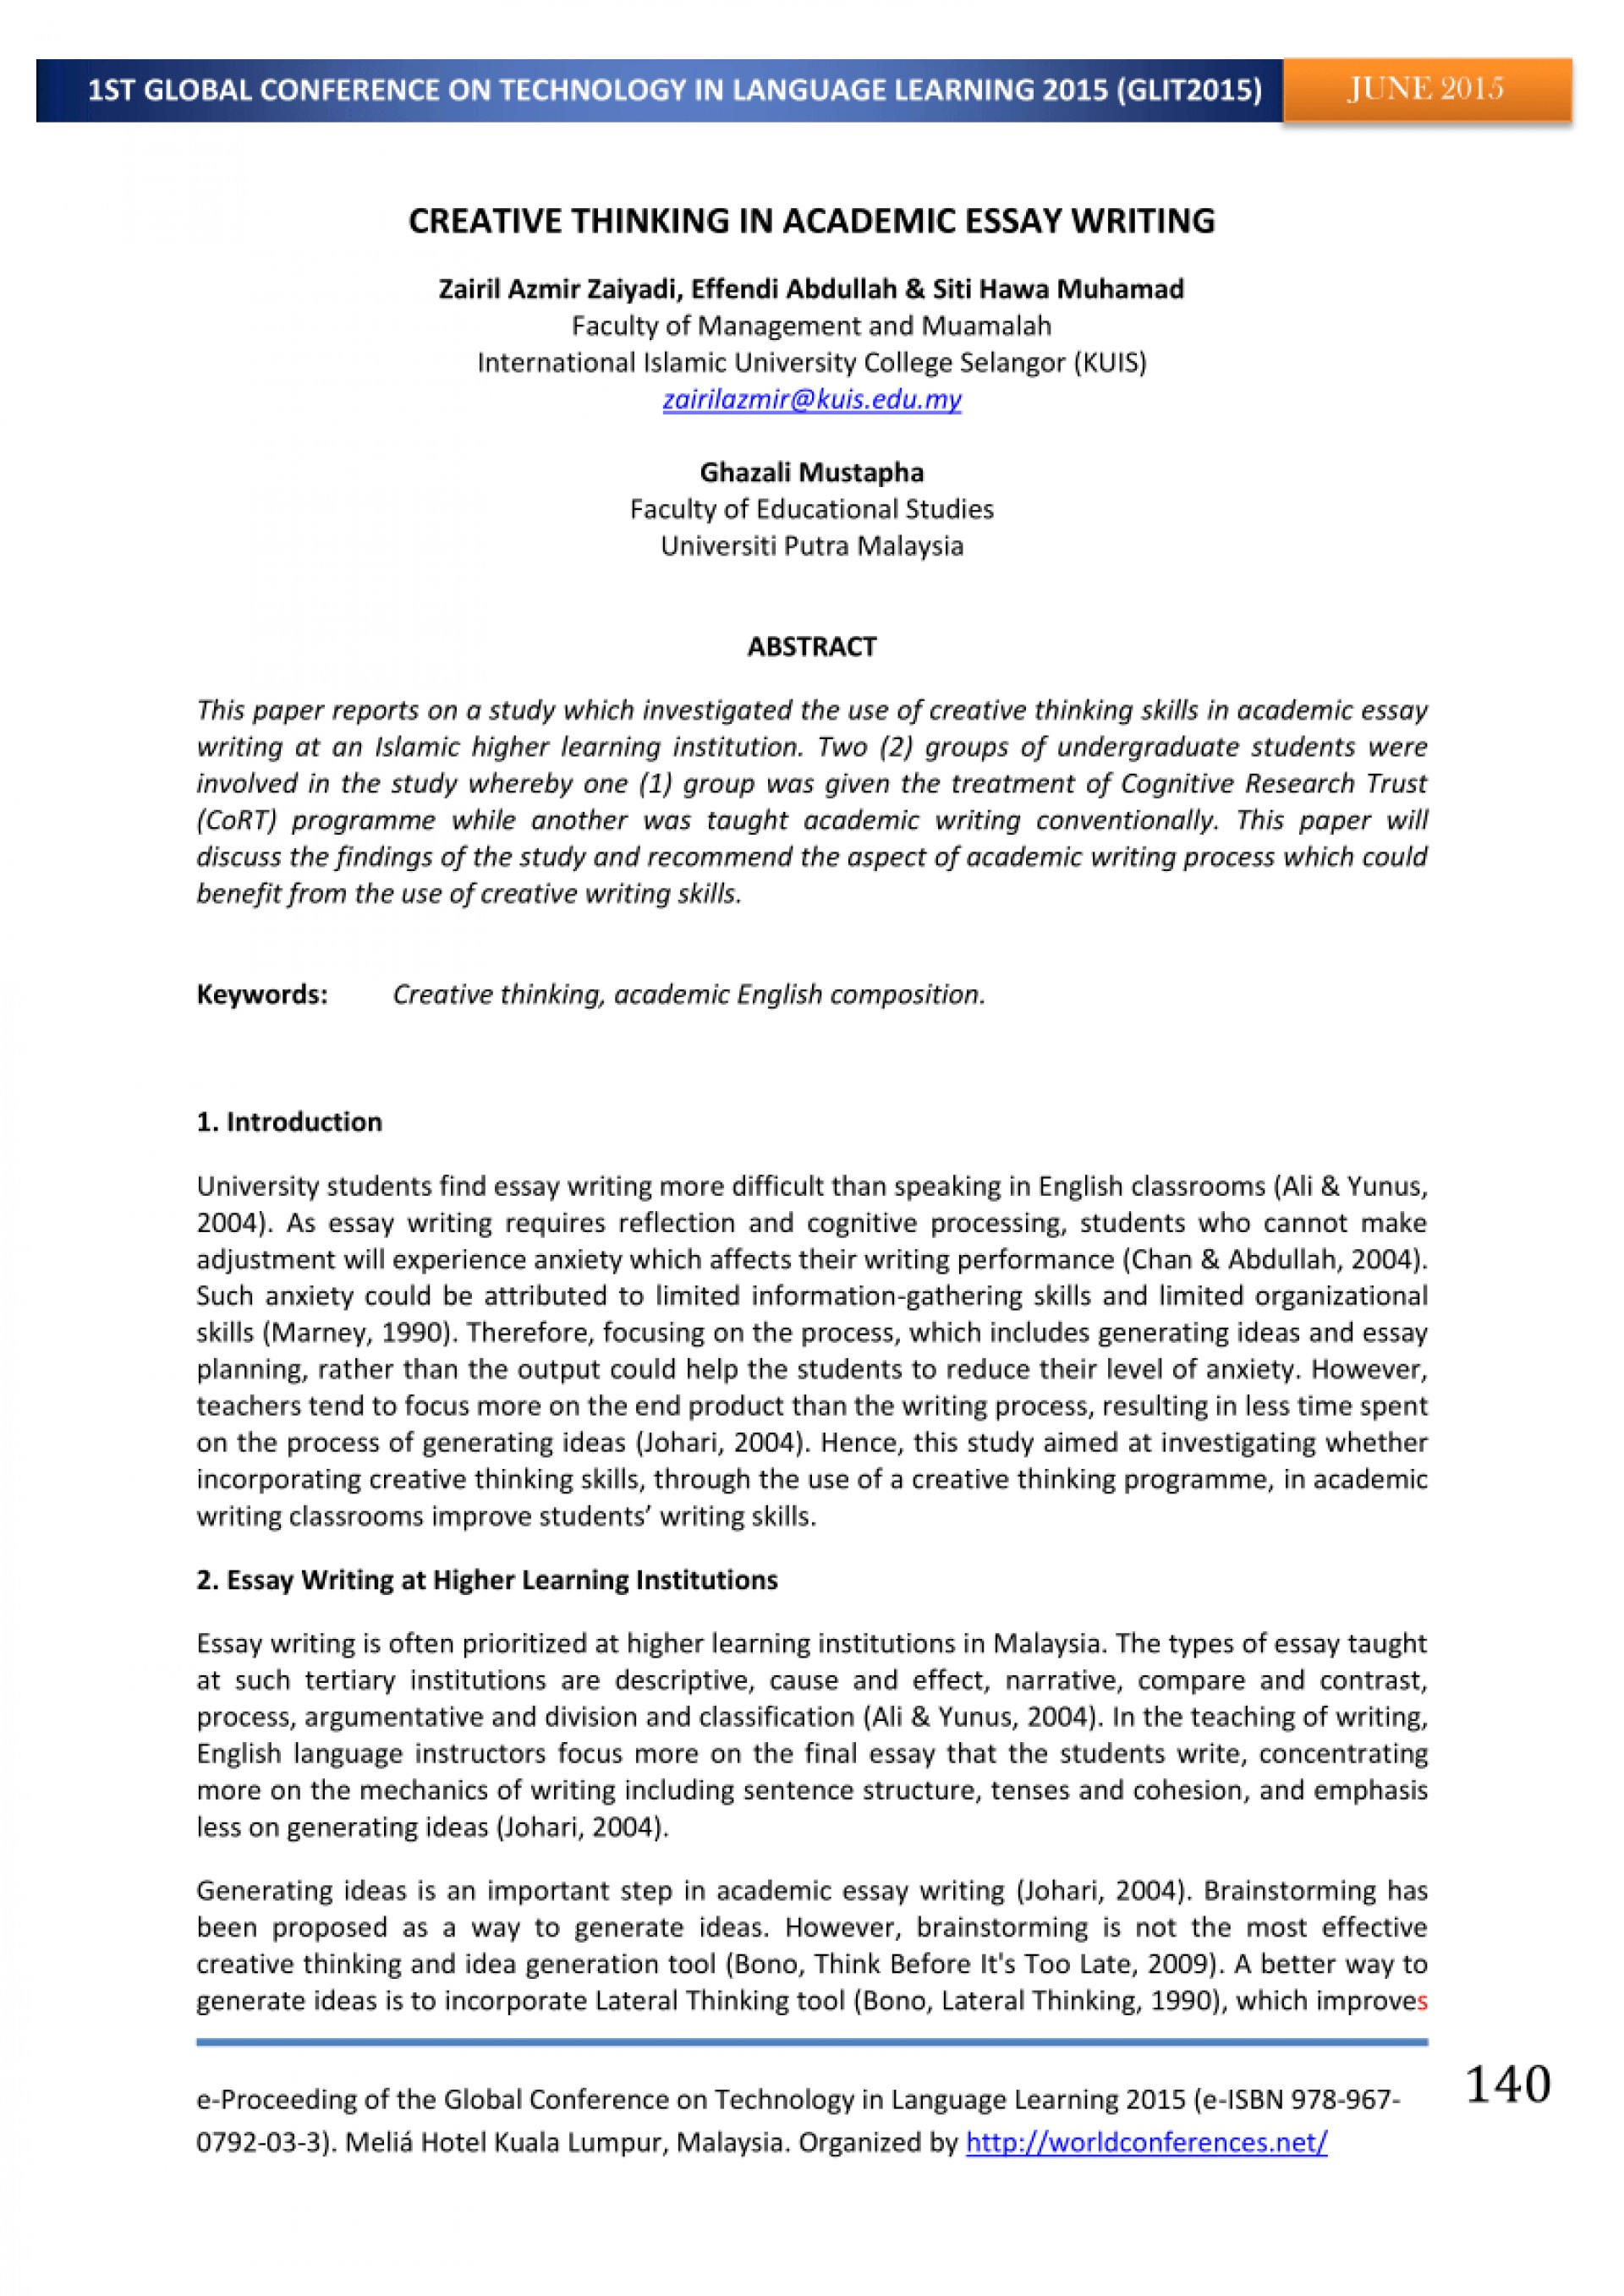 006 Largepreview Higher English Imaginative Essay Ideas Phenomenal Creative Writing Advanced 1920